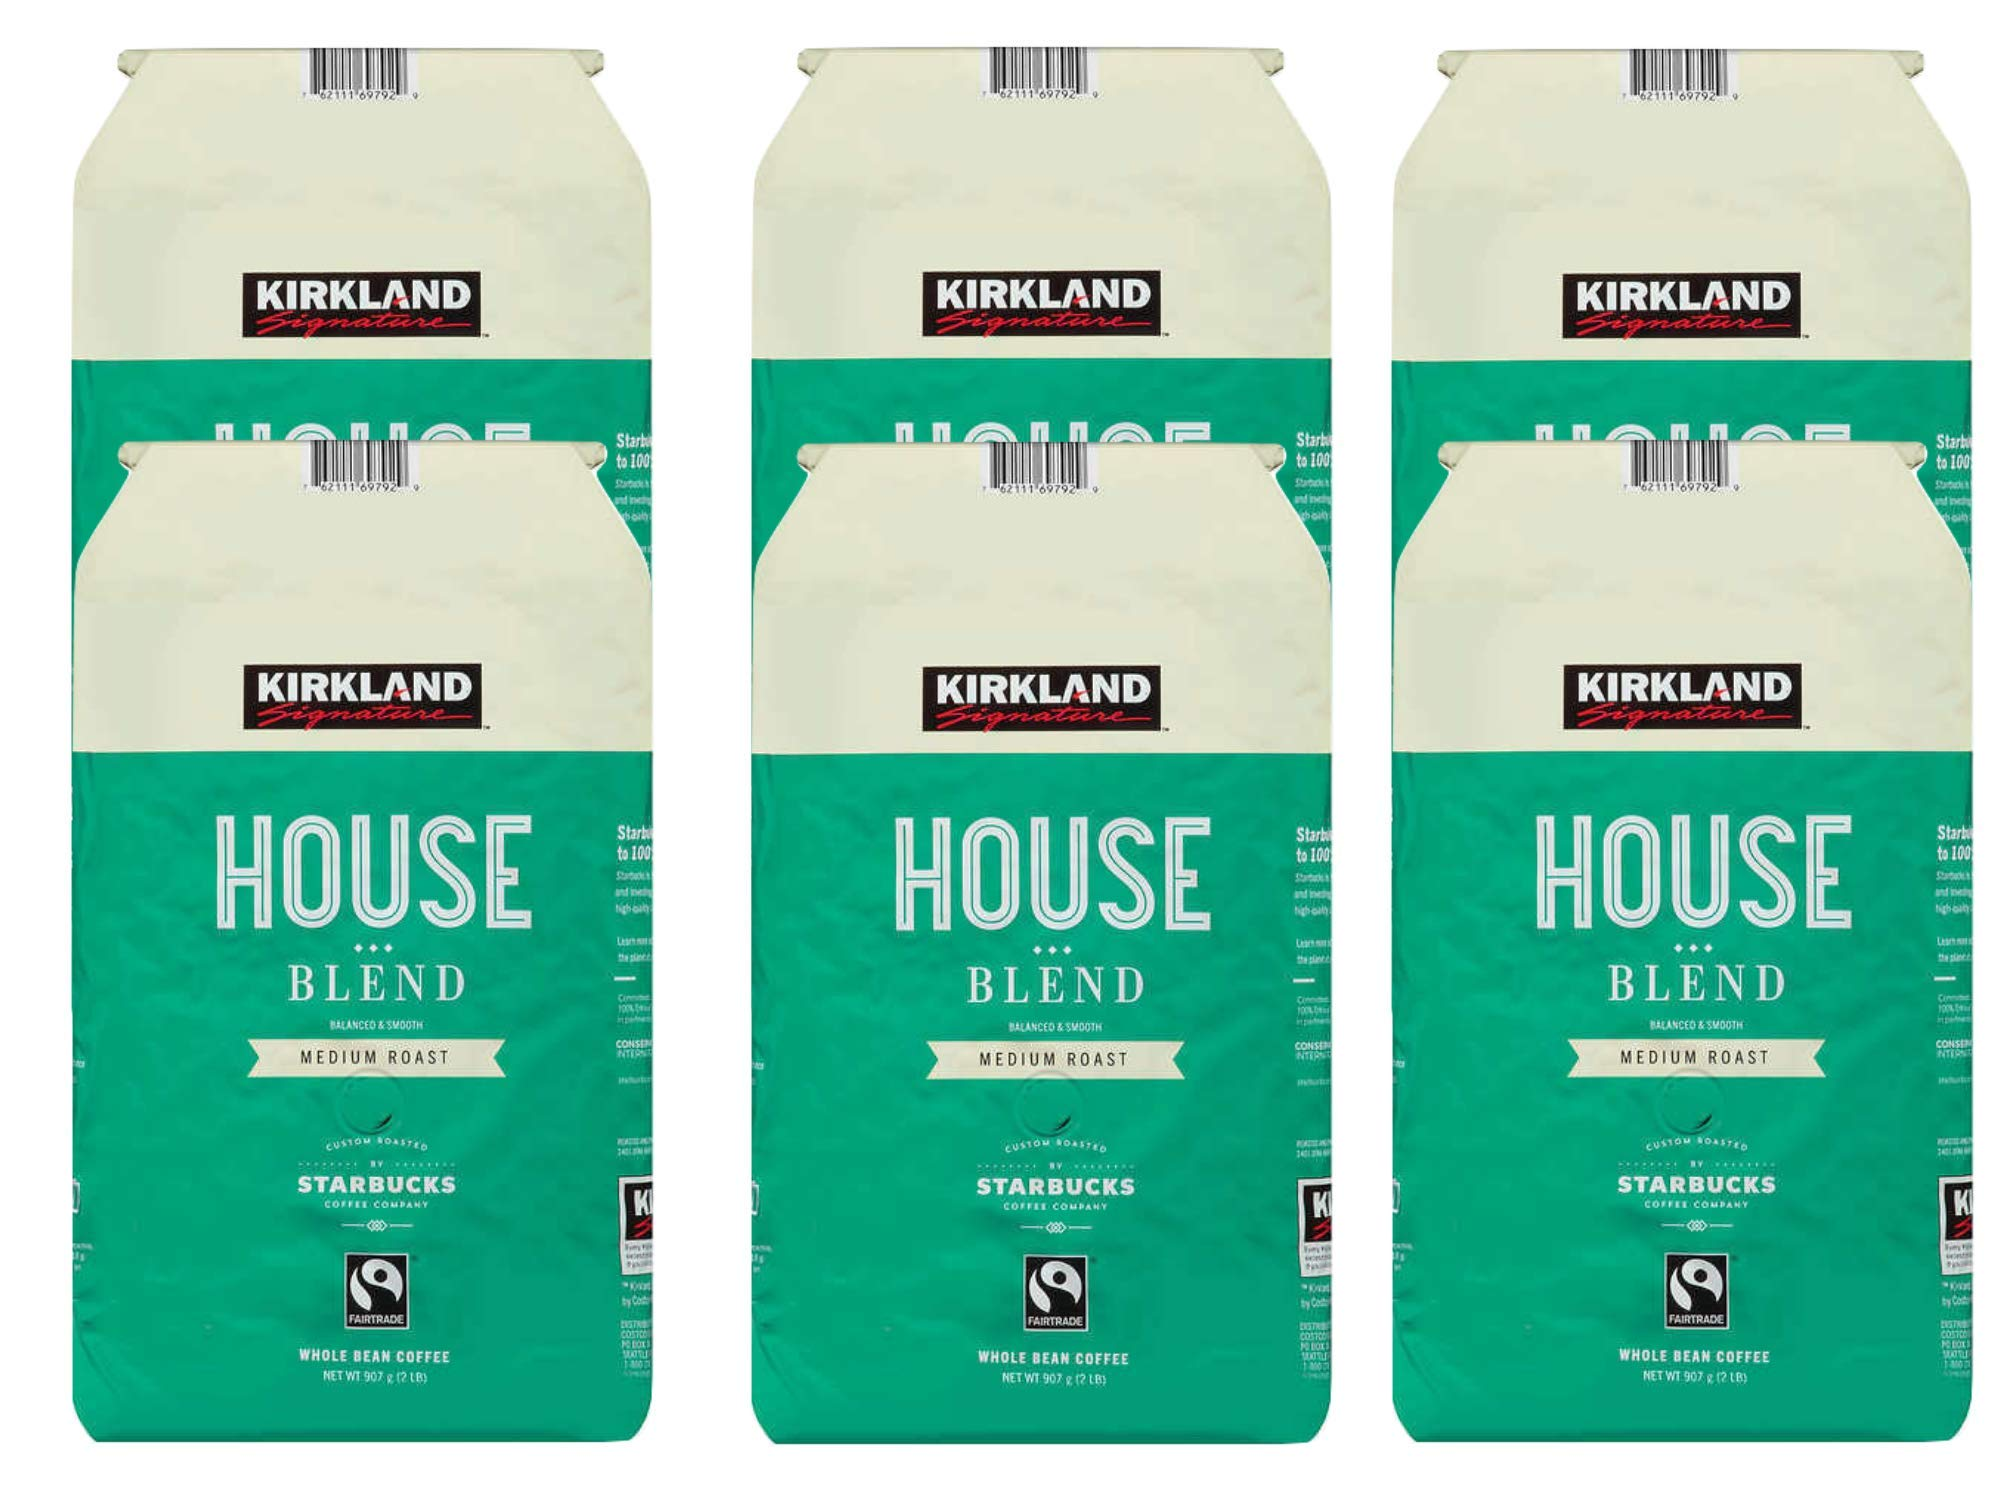 Kirkland Signature House Blend Coffee, 2 lbs(pack of 6) by Dealmor (Image #1)